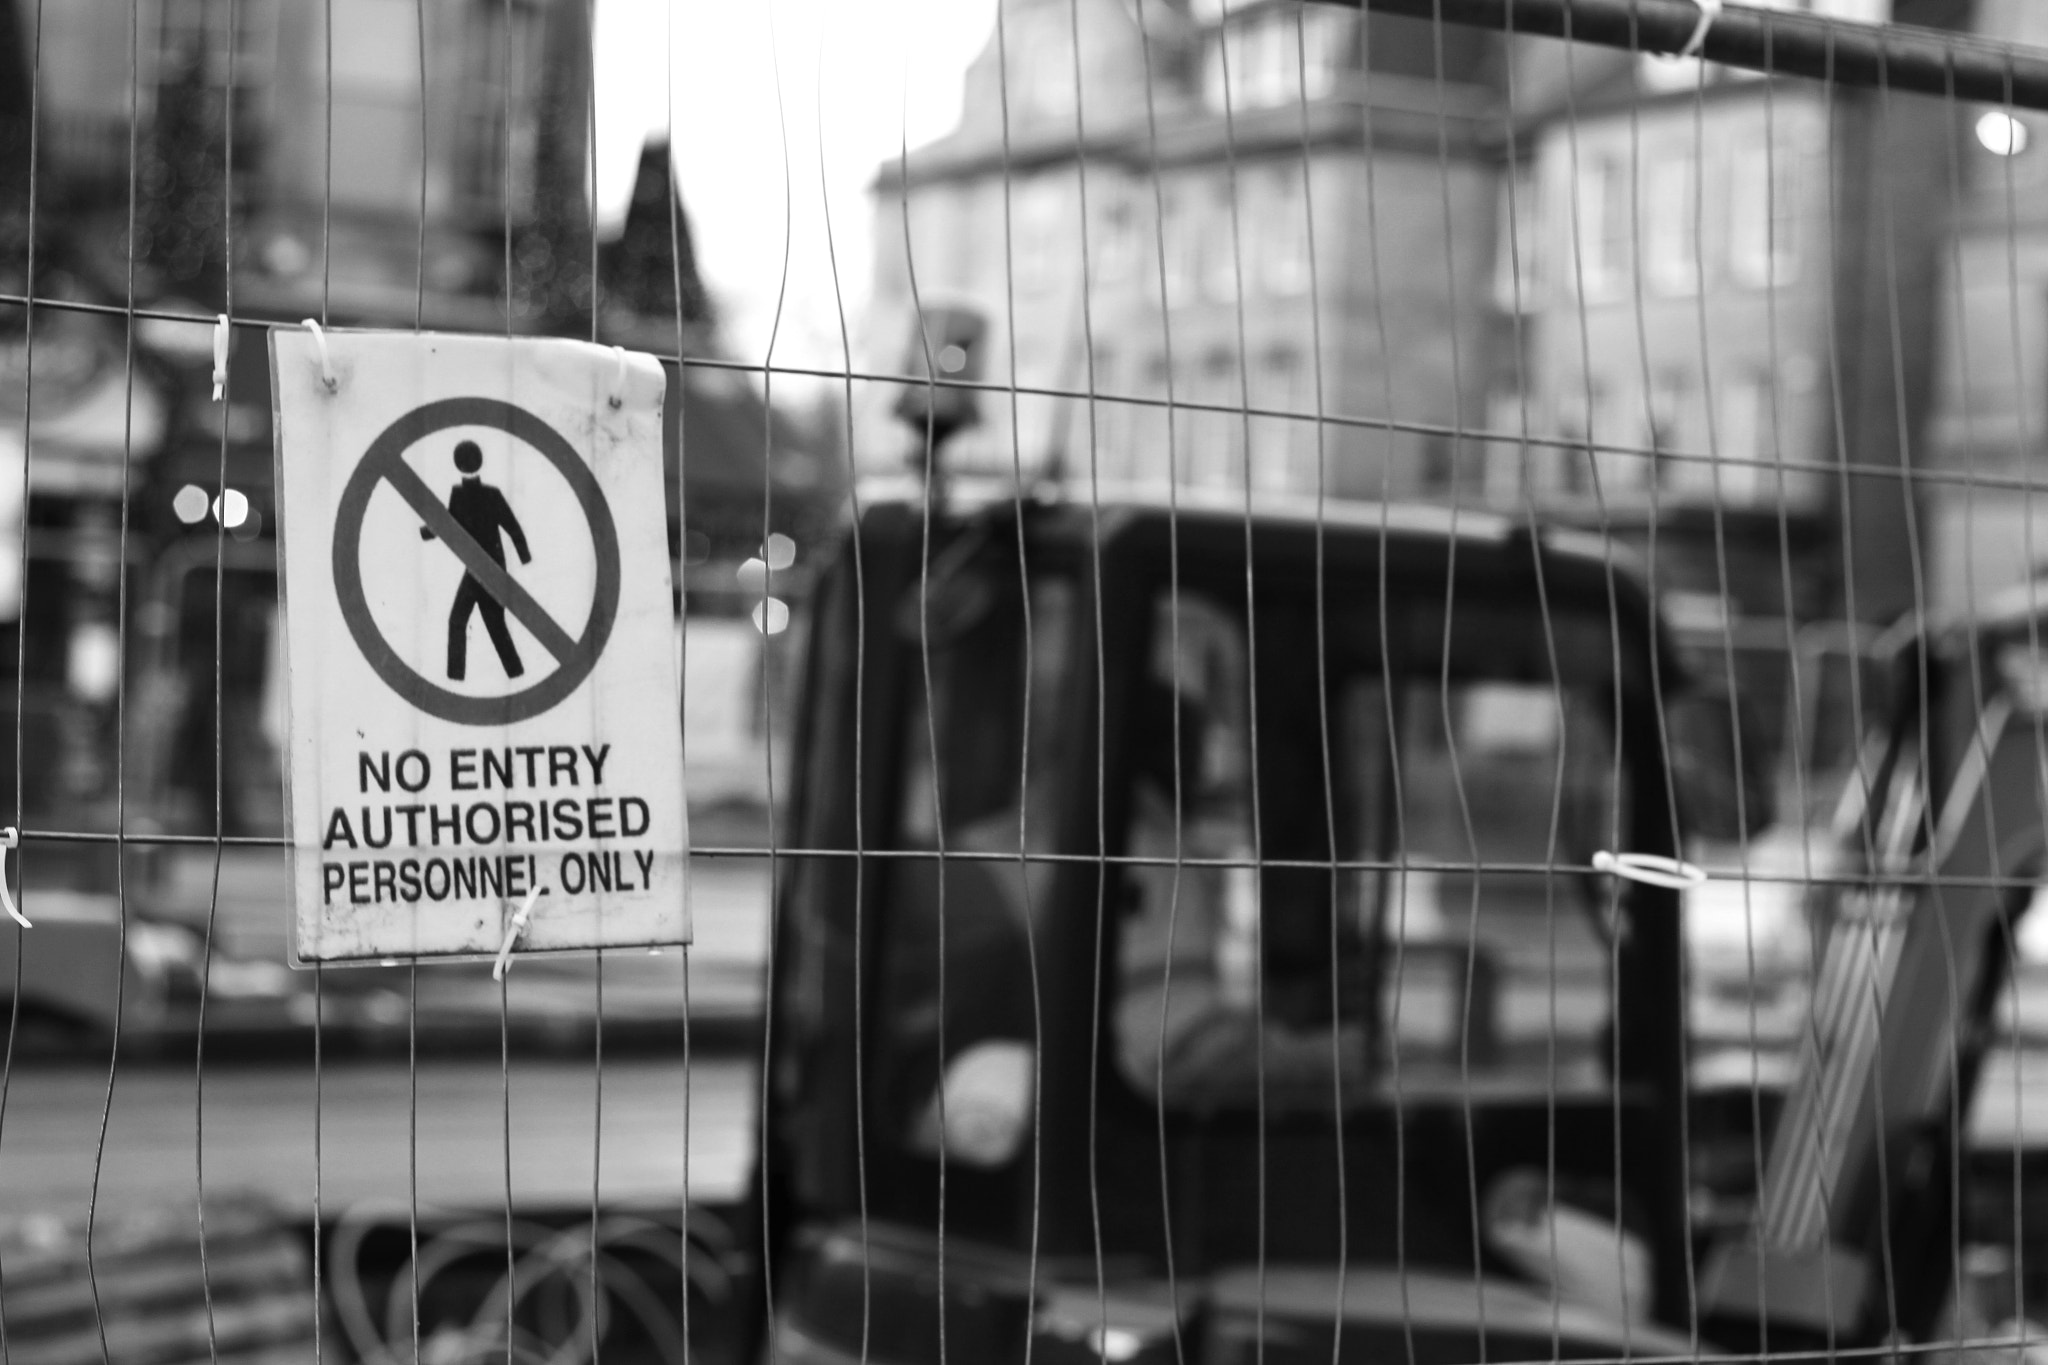 Photograph Authorised Personnel Only by Gordon Foley on 500px